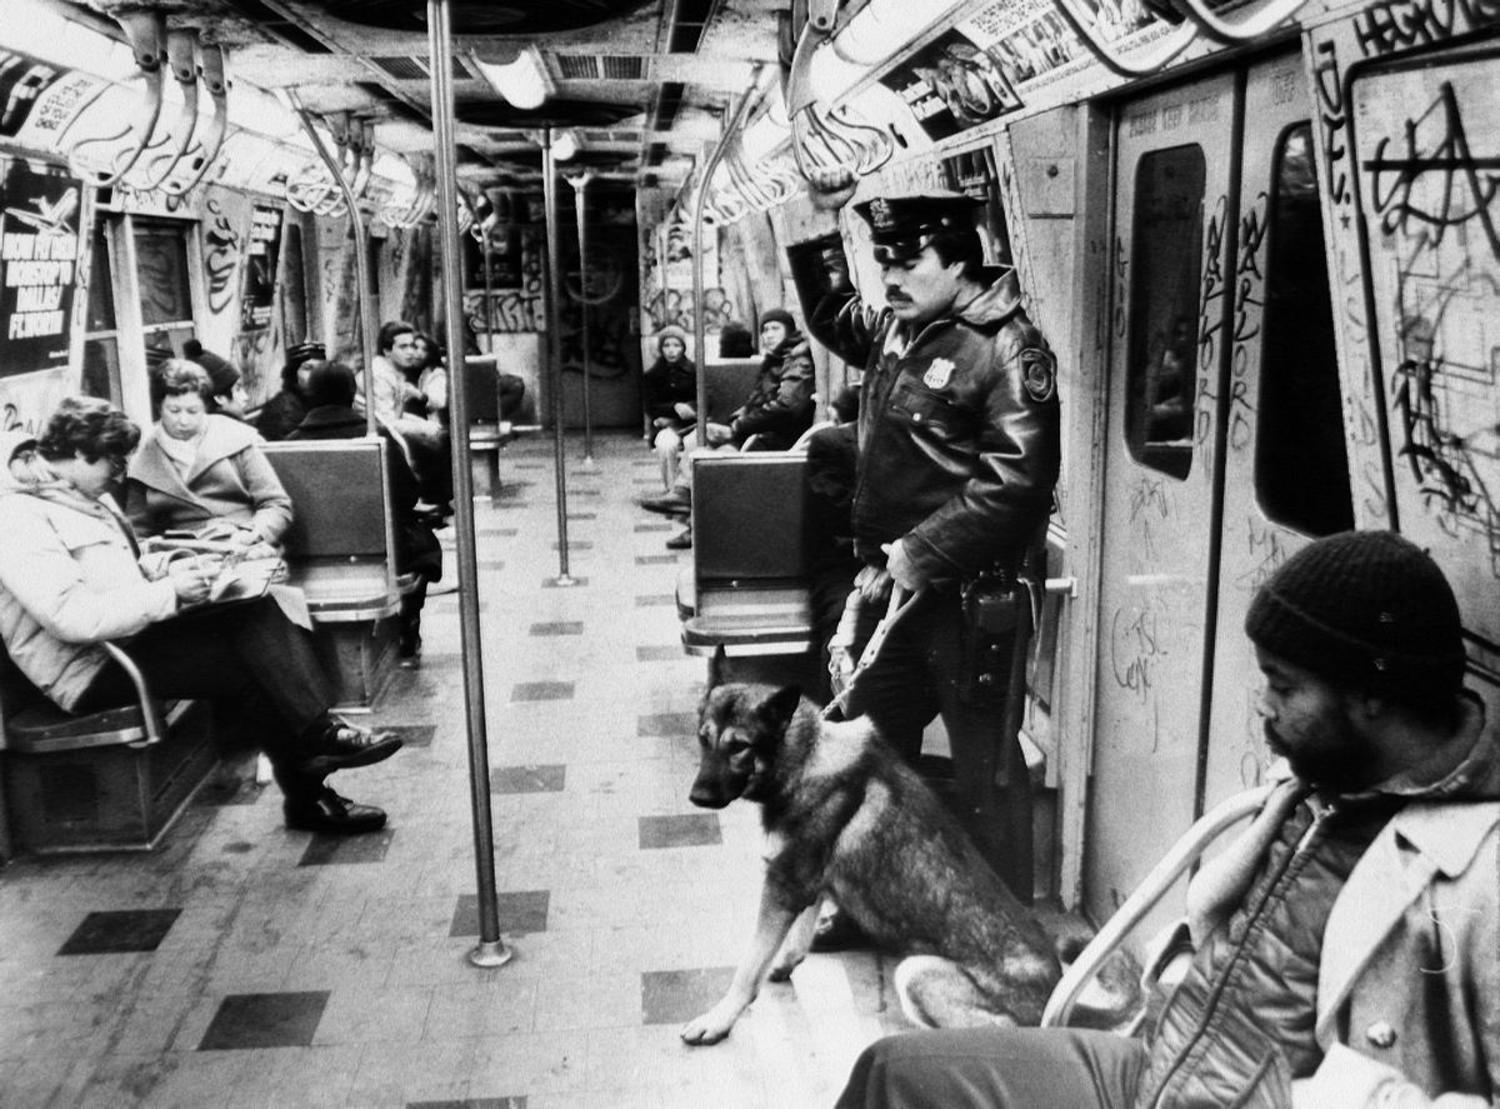 1980's: Transit police officer Emilio Mesa and police dog Blitz ride a graffiti covered subway car.